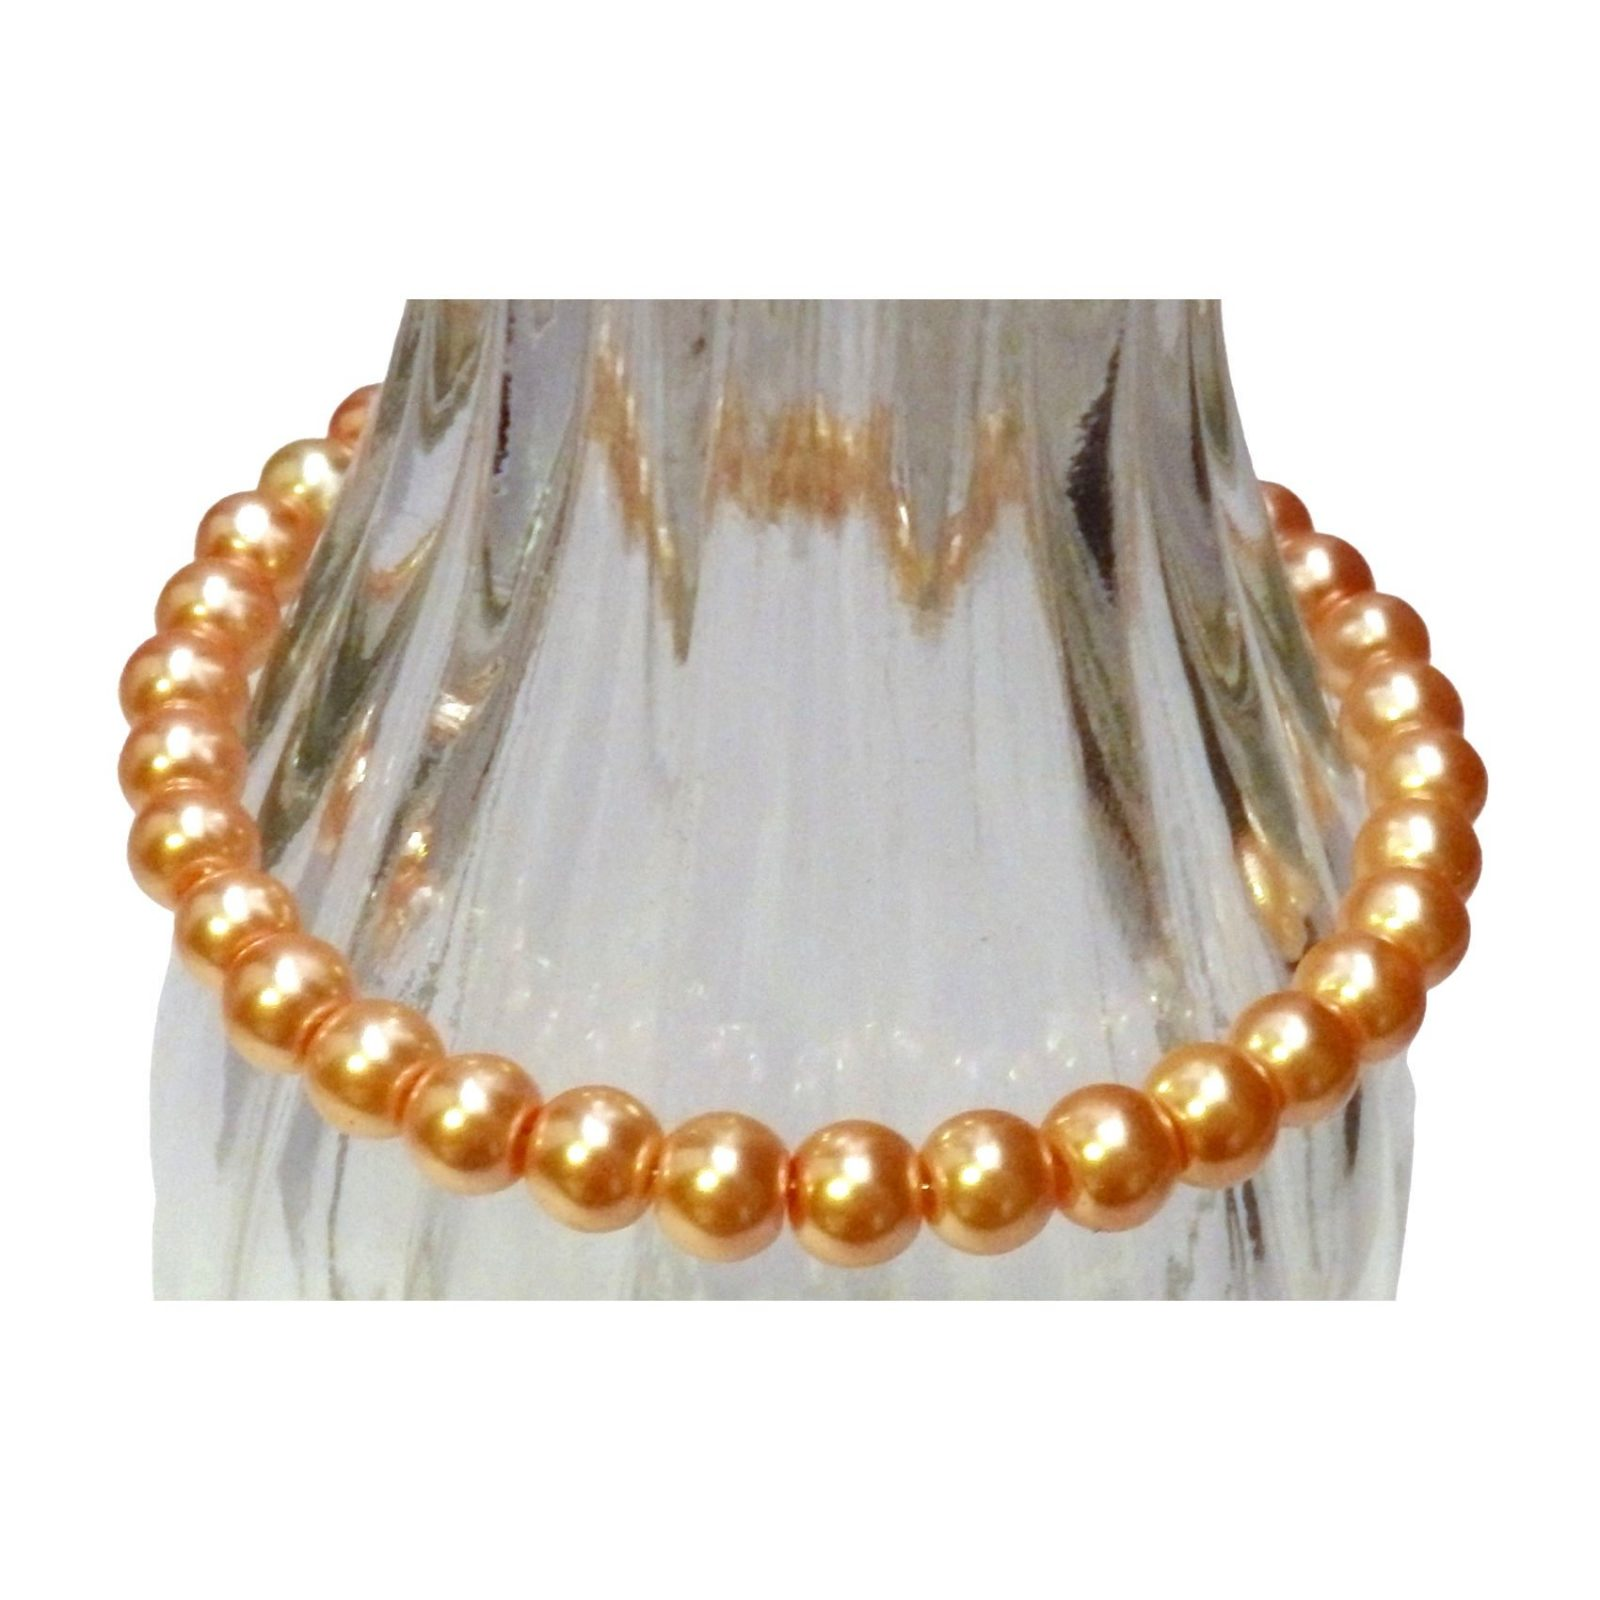 Creamy Earth Tones Peach Glass Beaded Bracelet 1320